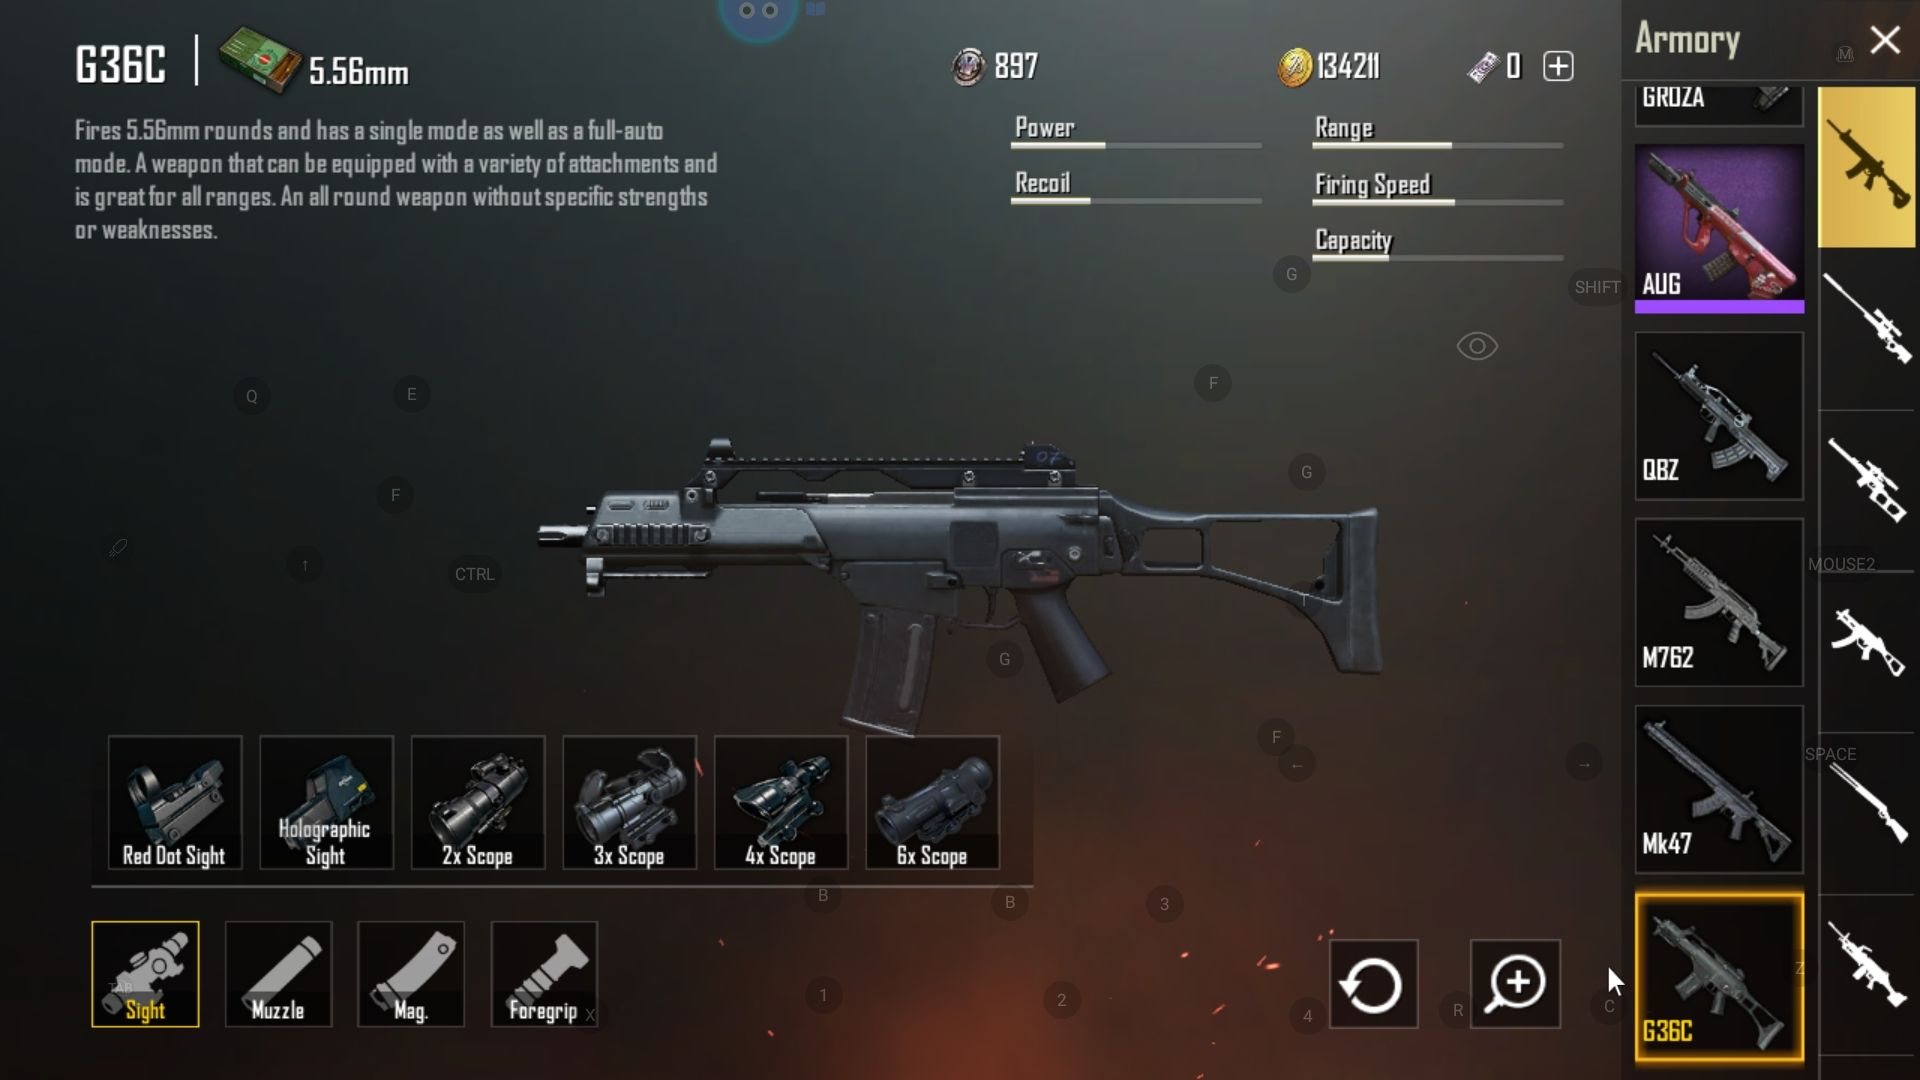 G36C is an Assault Rifle found in Sanhok Map PUBG  Need 5 56 Bullets